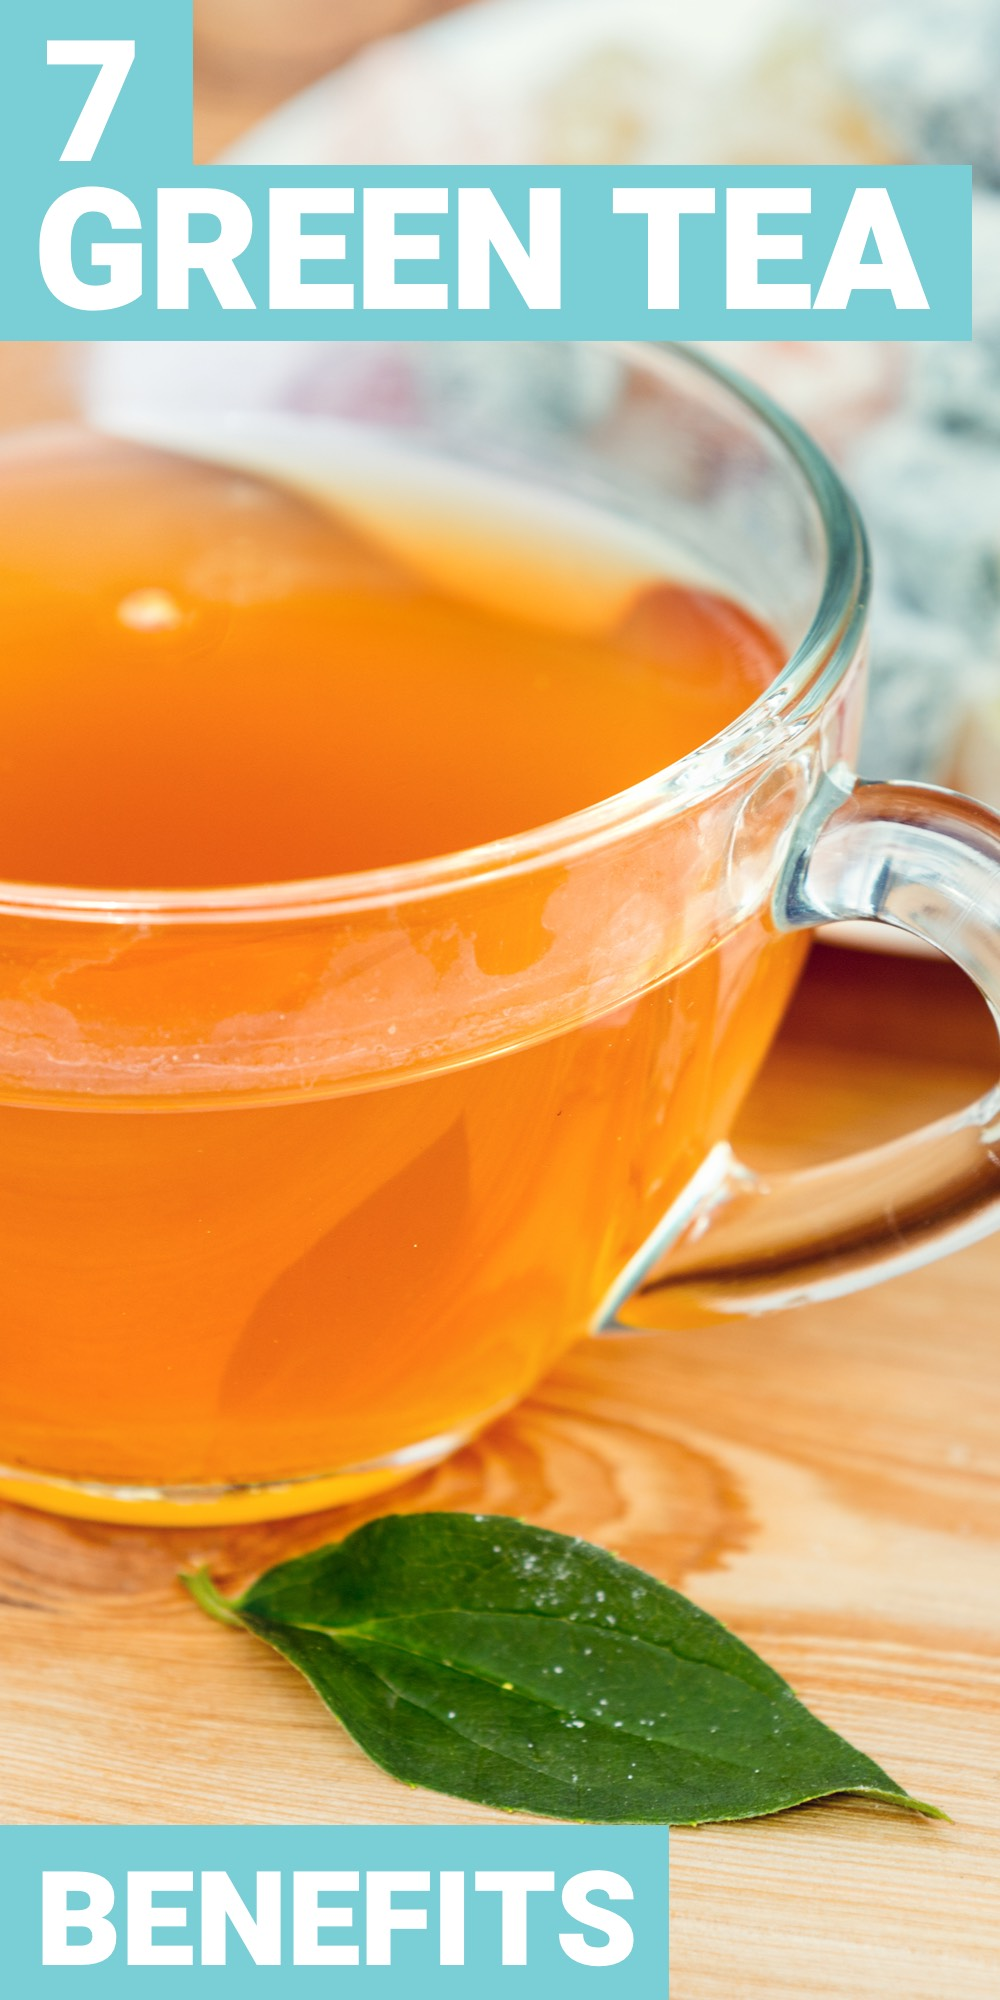 The benefits of drinking green tea are more than that it tastes delicious. Here are 7 of the top health benefits of green tea.